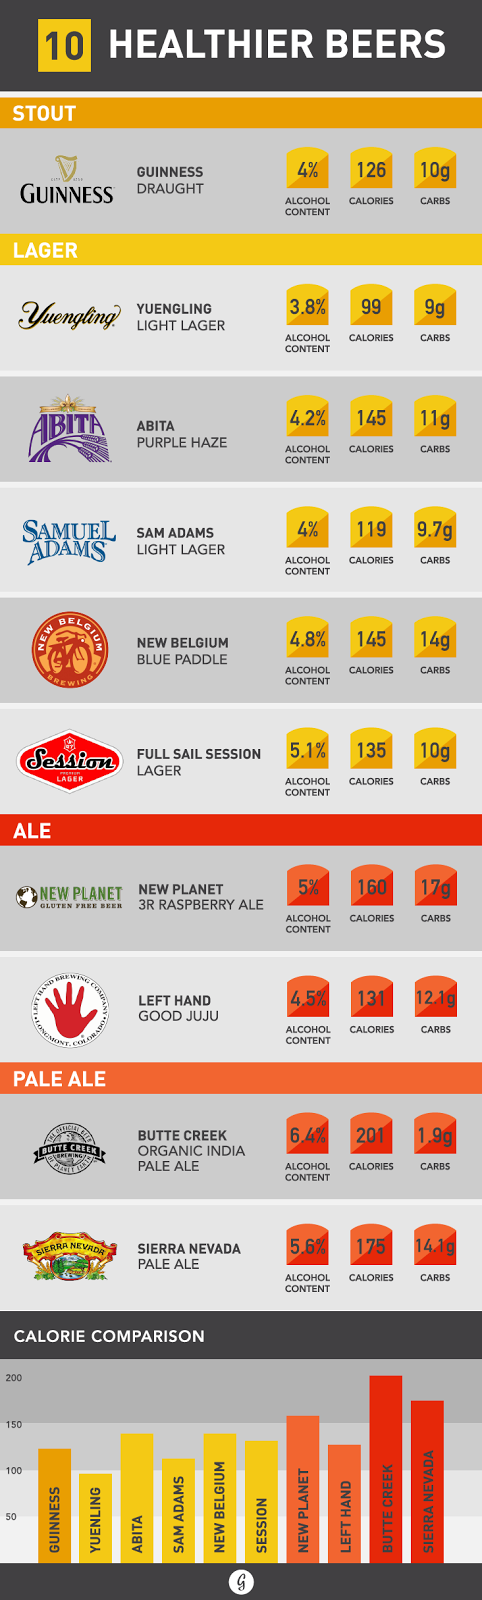 10 Healthier Beers (and How to Pick the Right One)